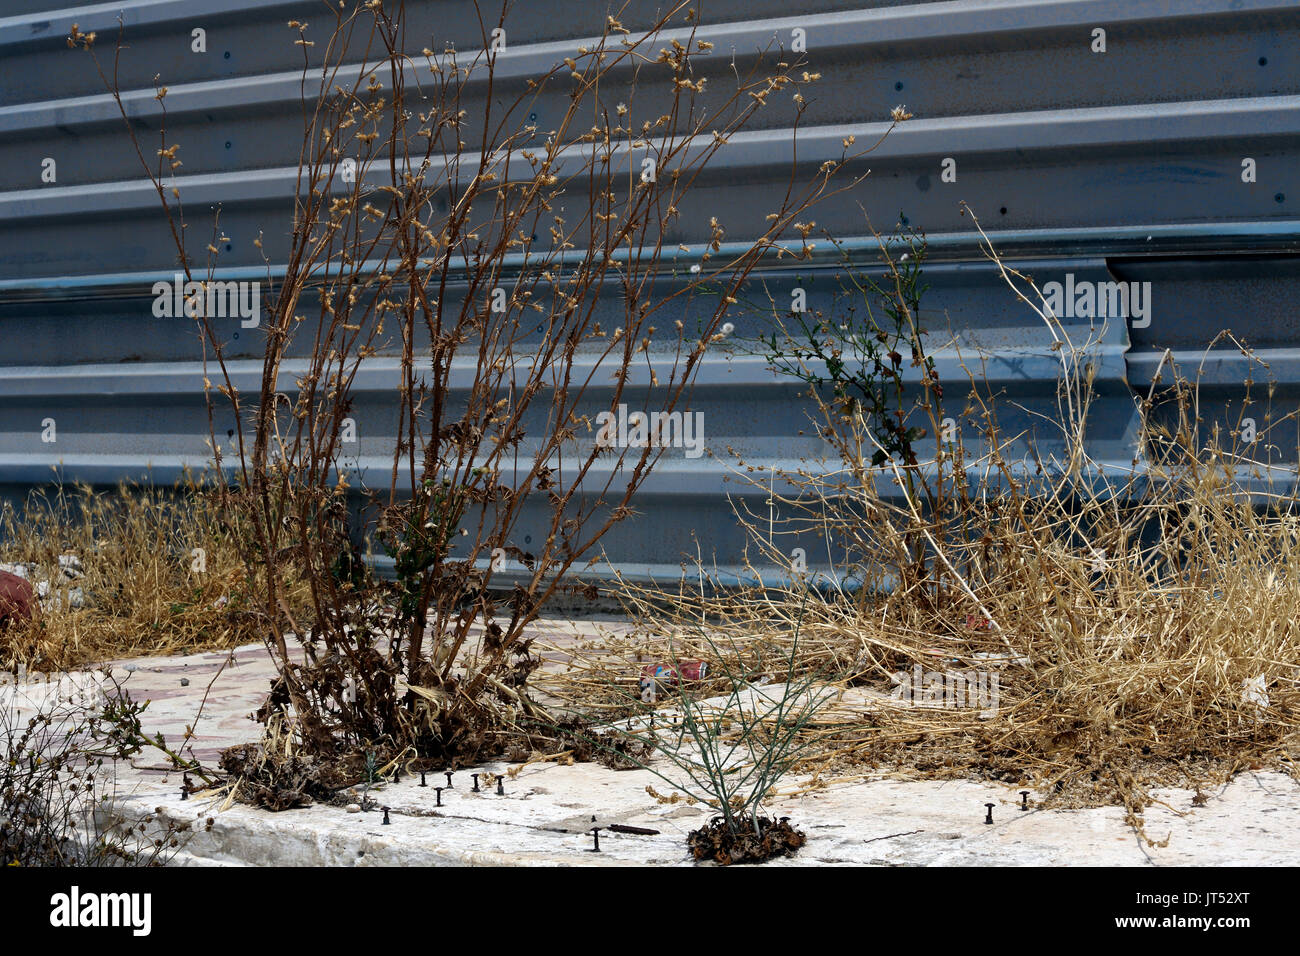 Lavrio Port Attica Greece dead plants and weeds - Stock Image